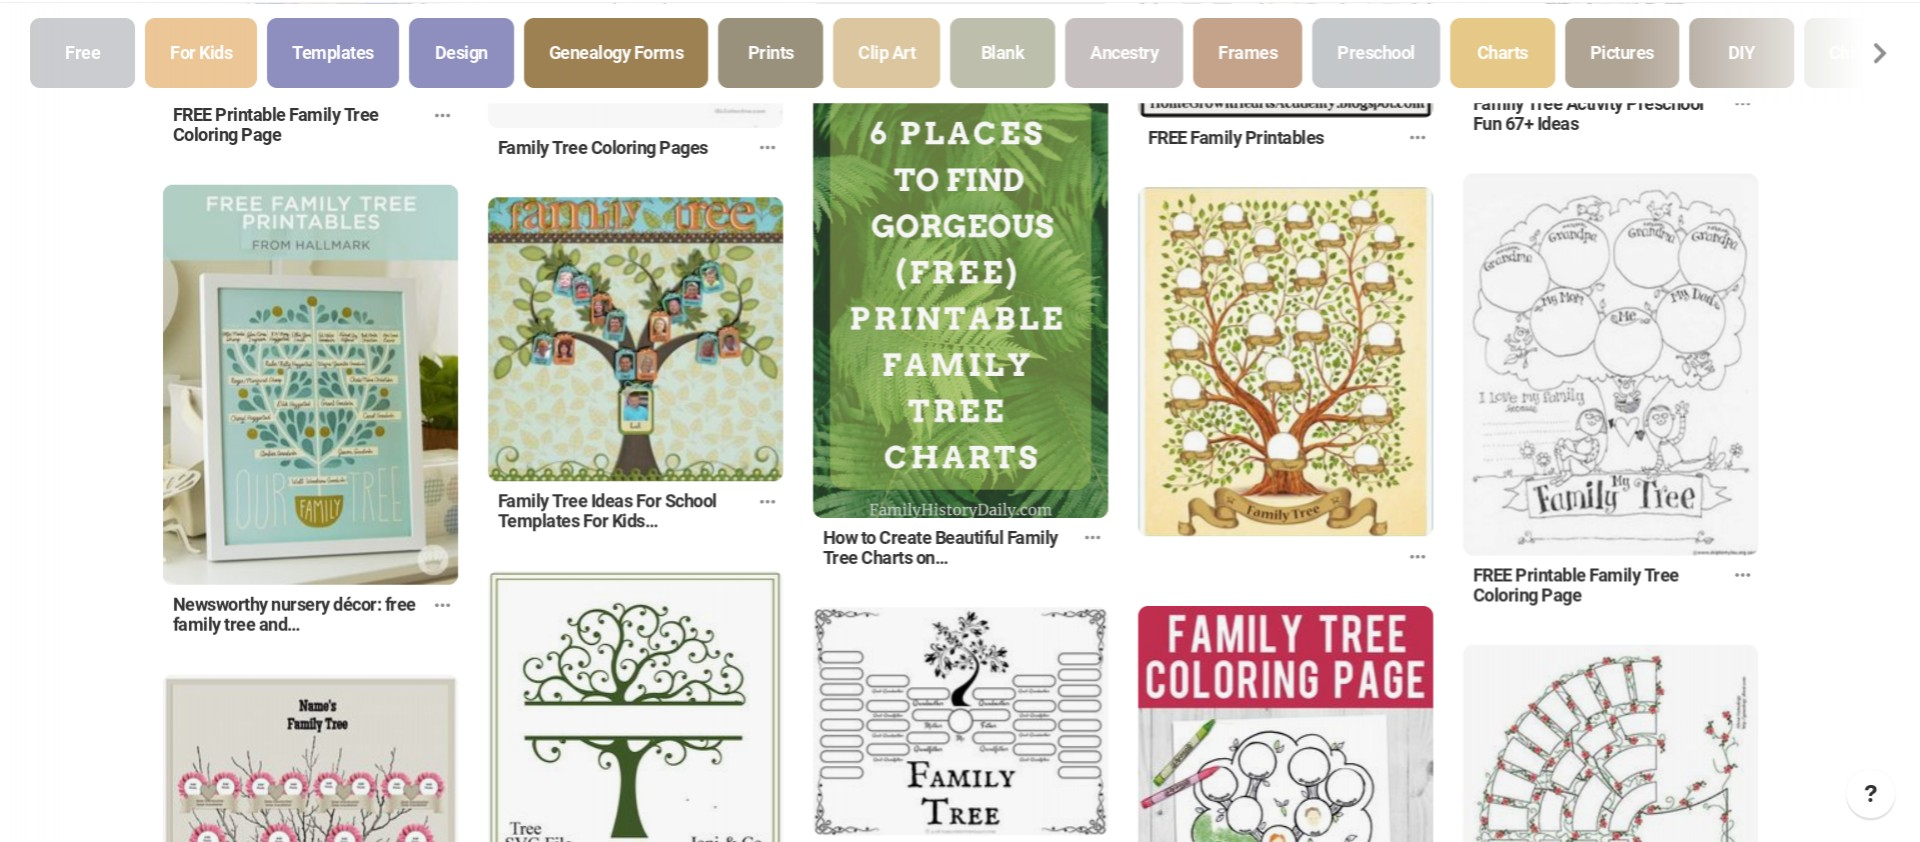 046 Free Printable Family Tree Template Or Make Easily With.